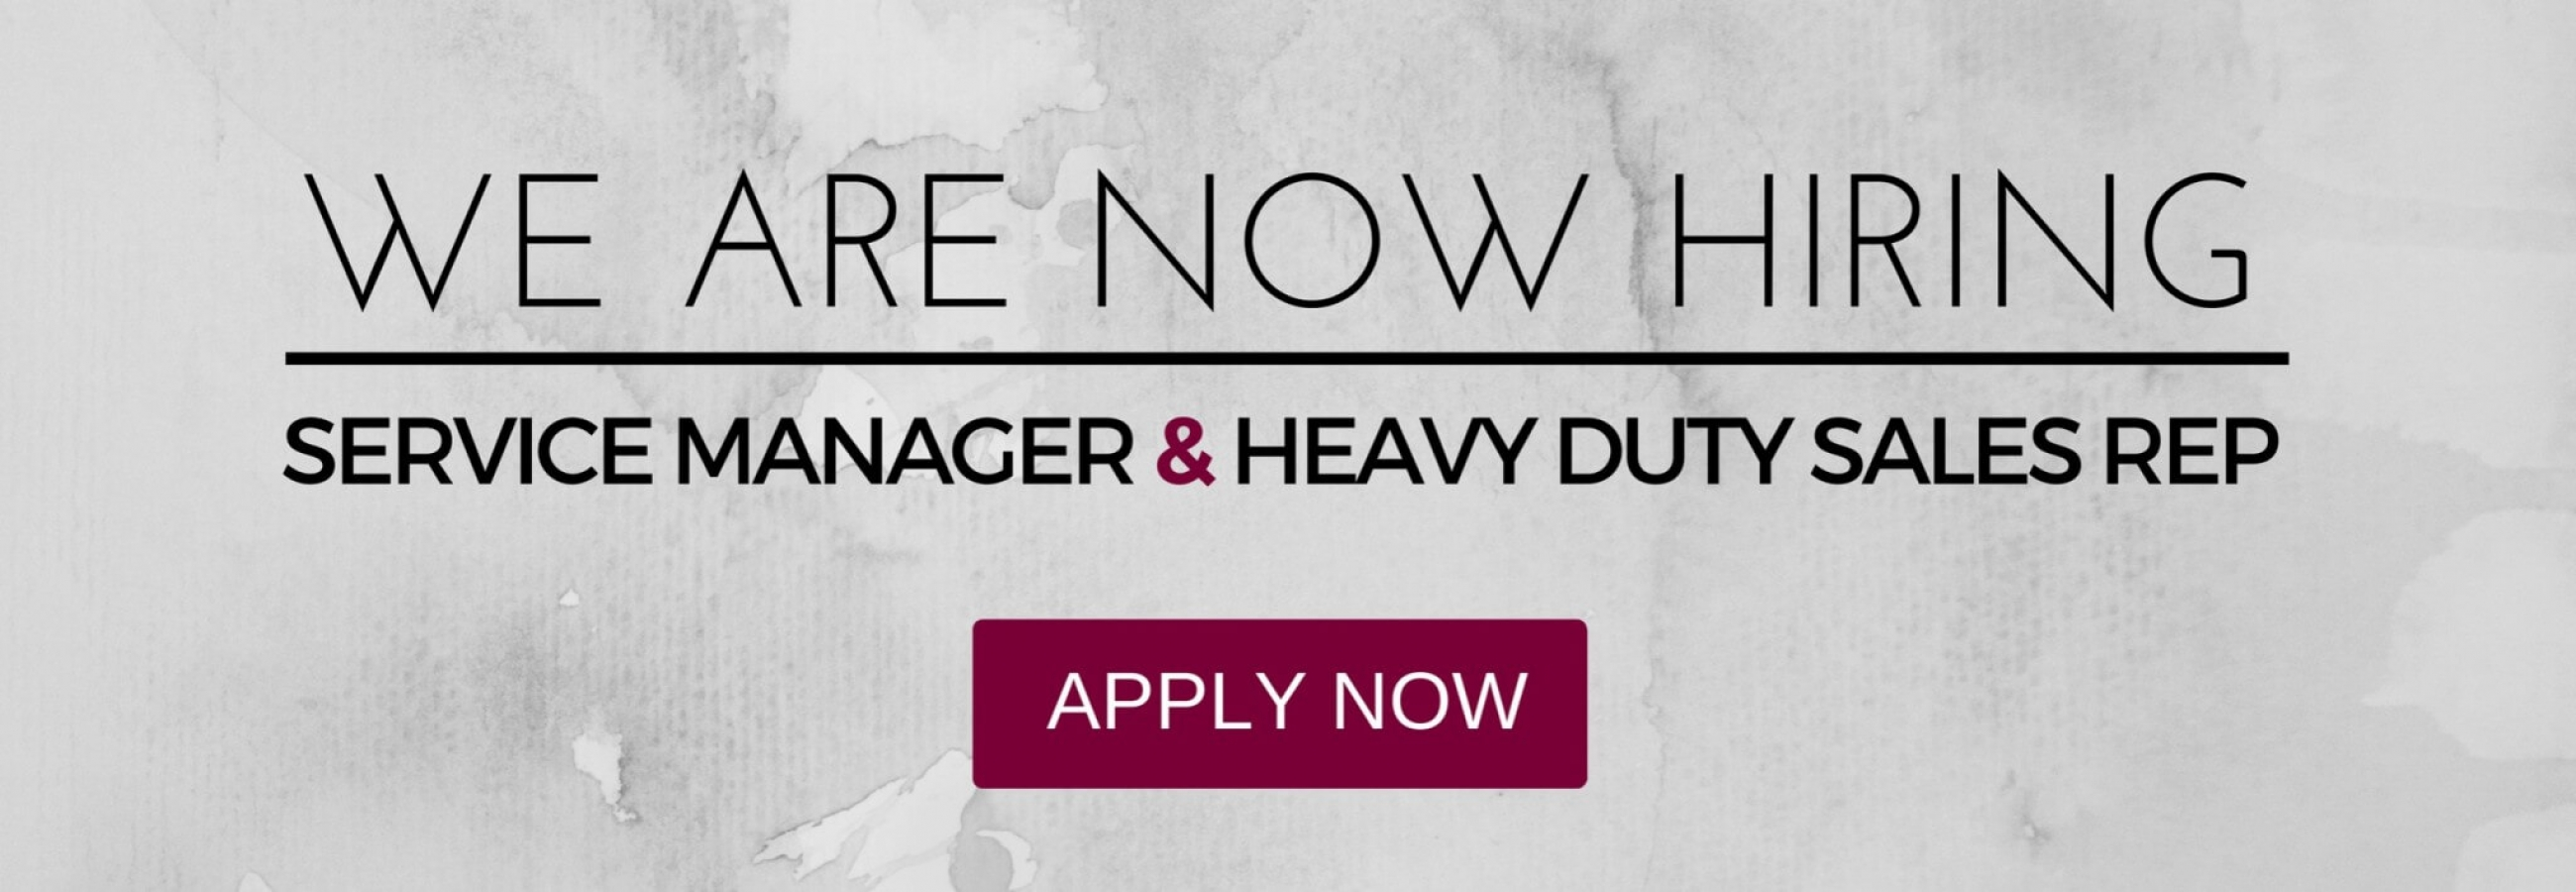 recruitment_service manager_Heavy DUty Sales rep